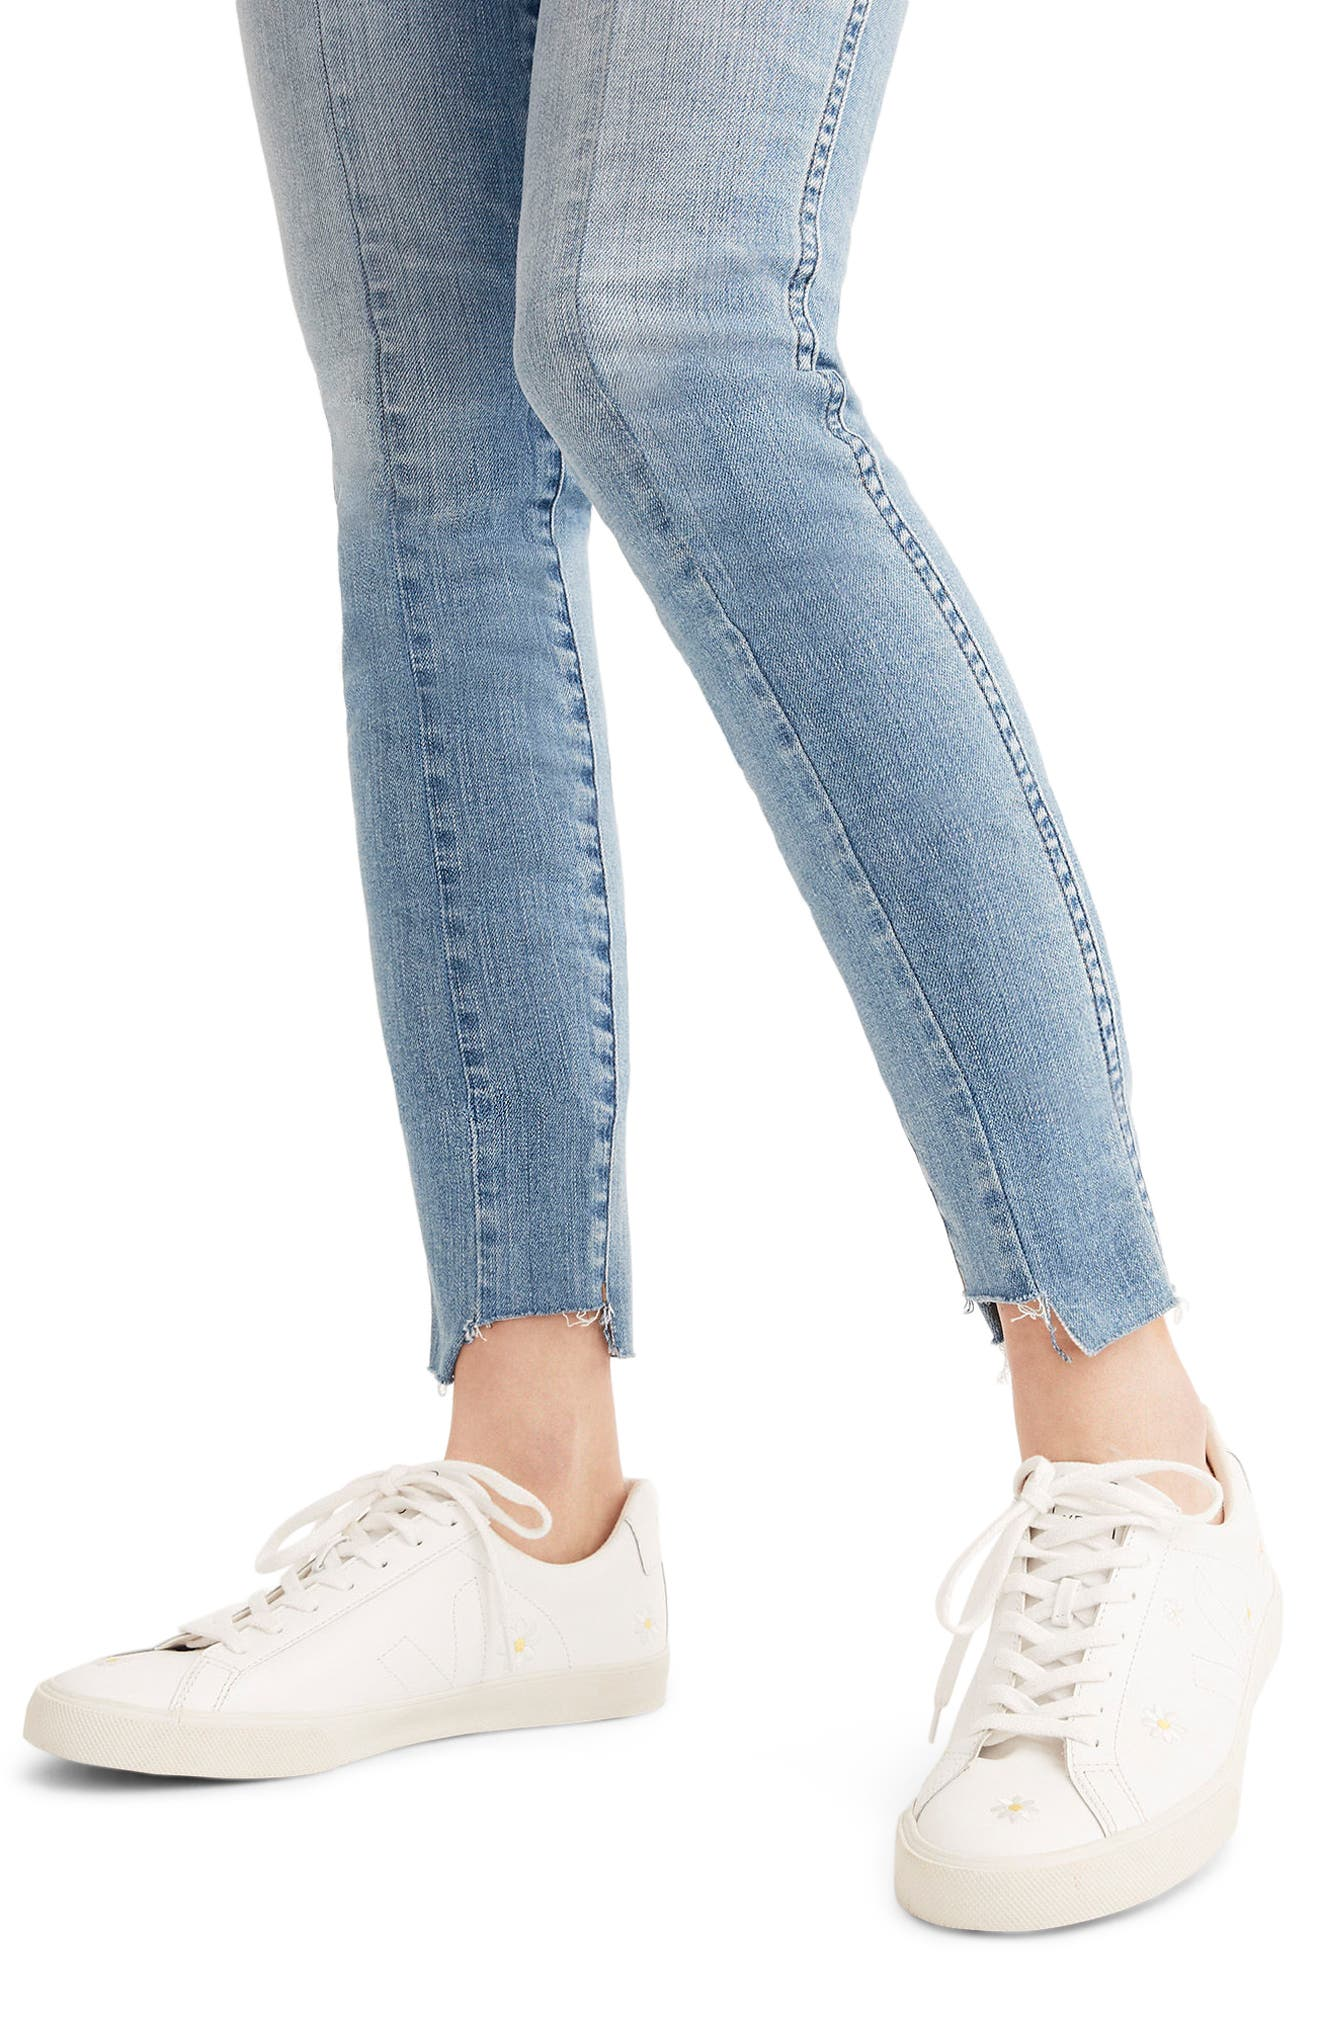 MADEWELL,                             9-Inch High Waist Seamed Step-Hem Edition Skinny Jeans,                             Alternate thumbnail 5, color,                             400